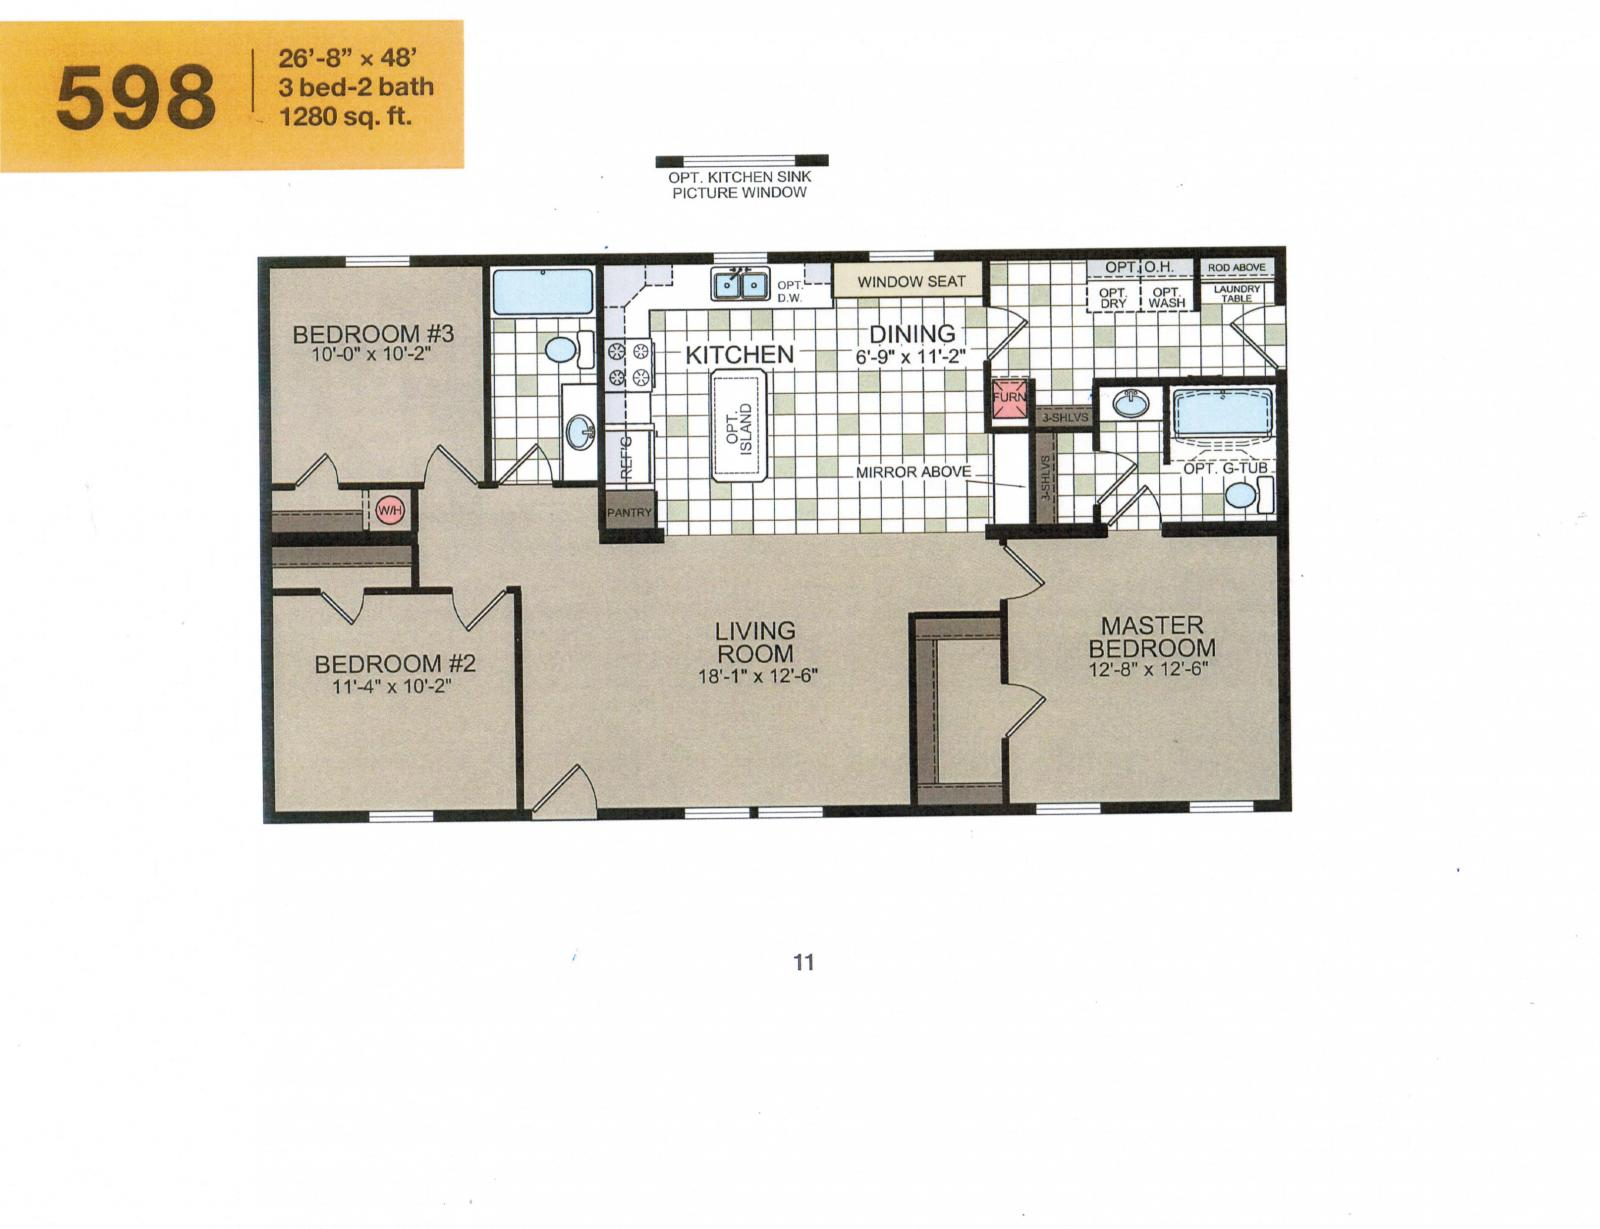 titan mobile home floor plans images titan homes floor plans 799 champion remodeling a single